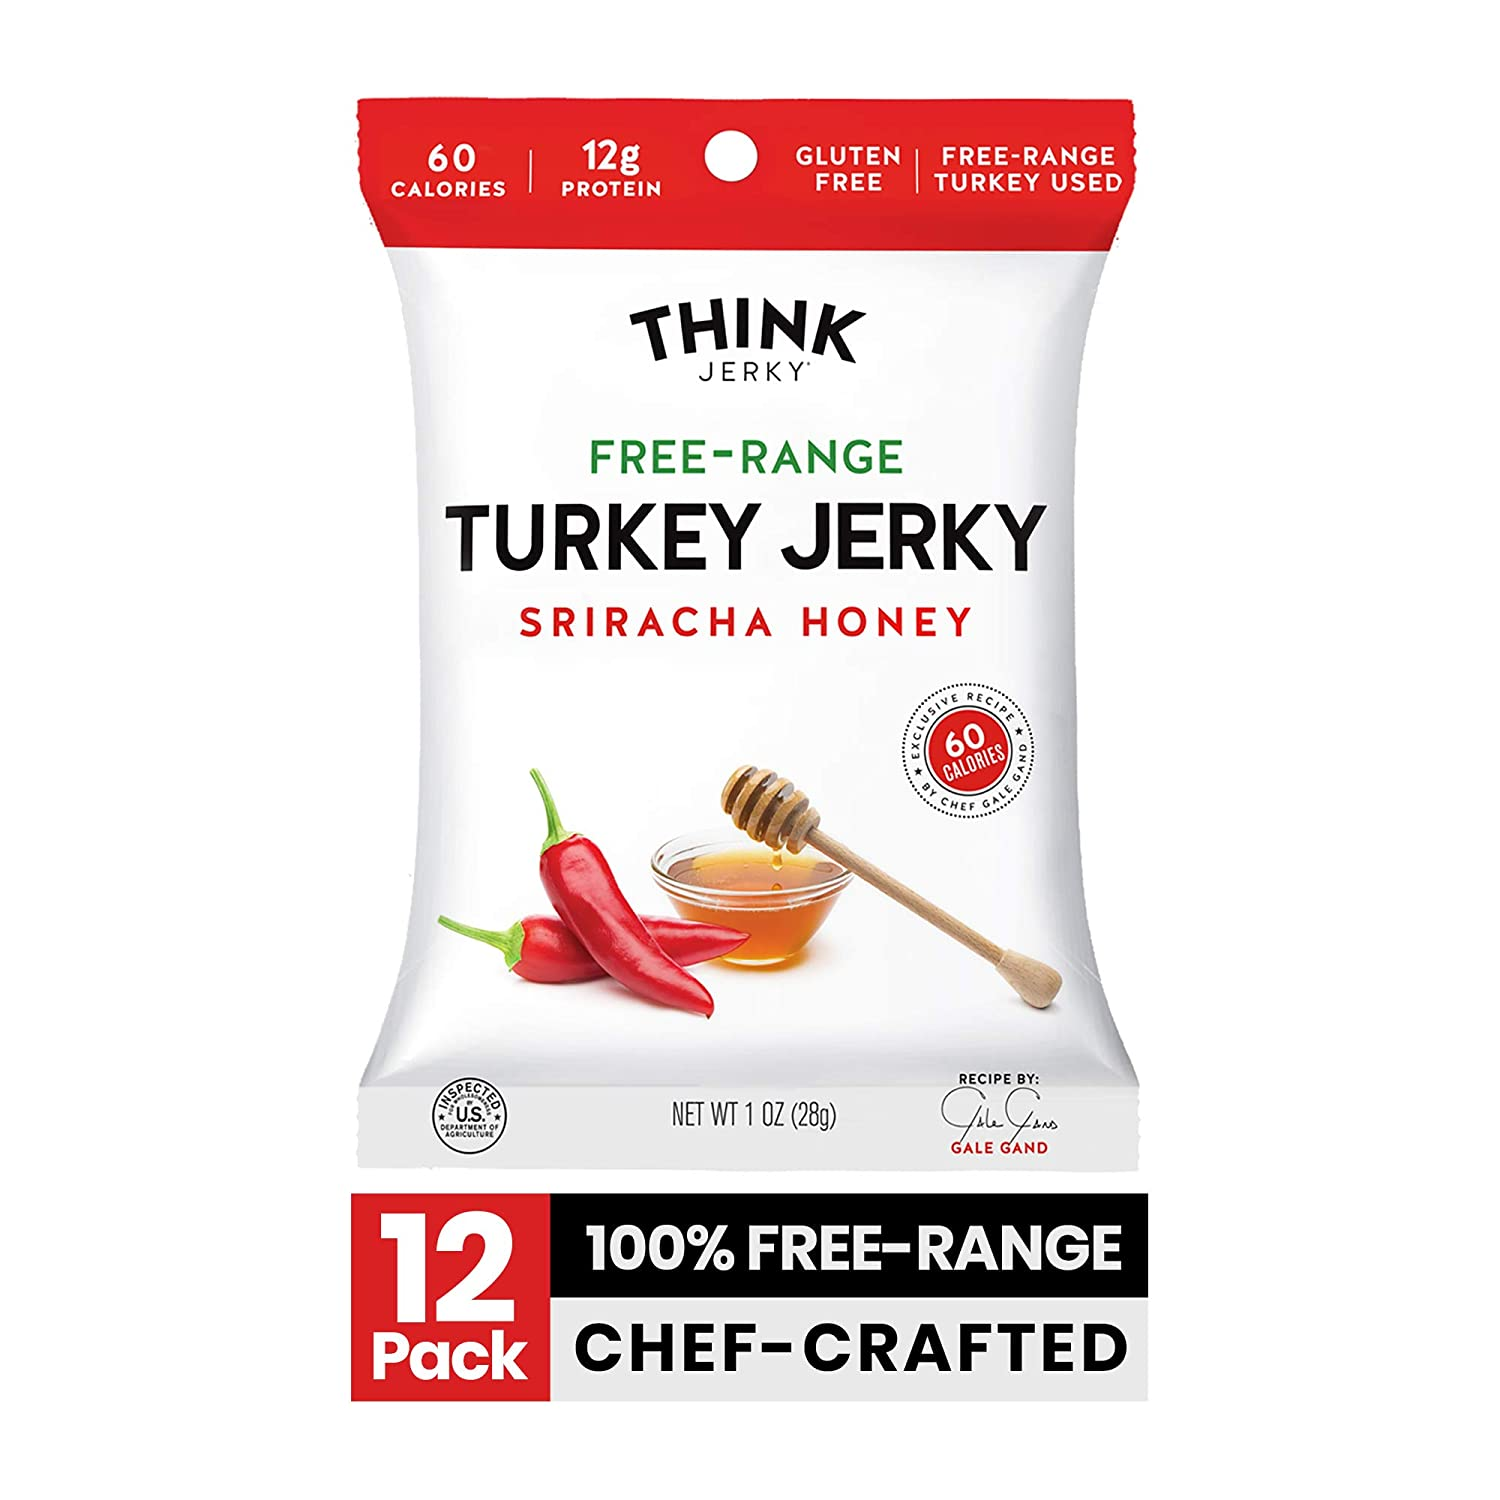 Sriracha Honey Turkey Jerky by Think Jerky — Delicious Chef Crafted Jerky — Free-Range Turkey With No Gluten or Antibiotics Added — Healthy Protein Snack Low in Calories and Fat — 1 Ounce (12 Pack)